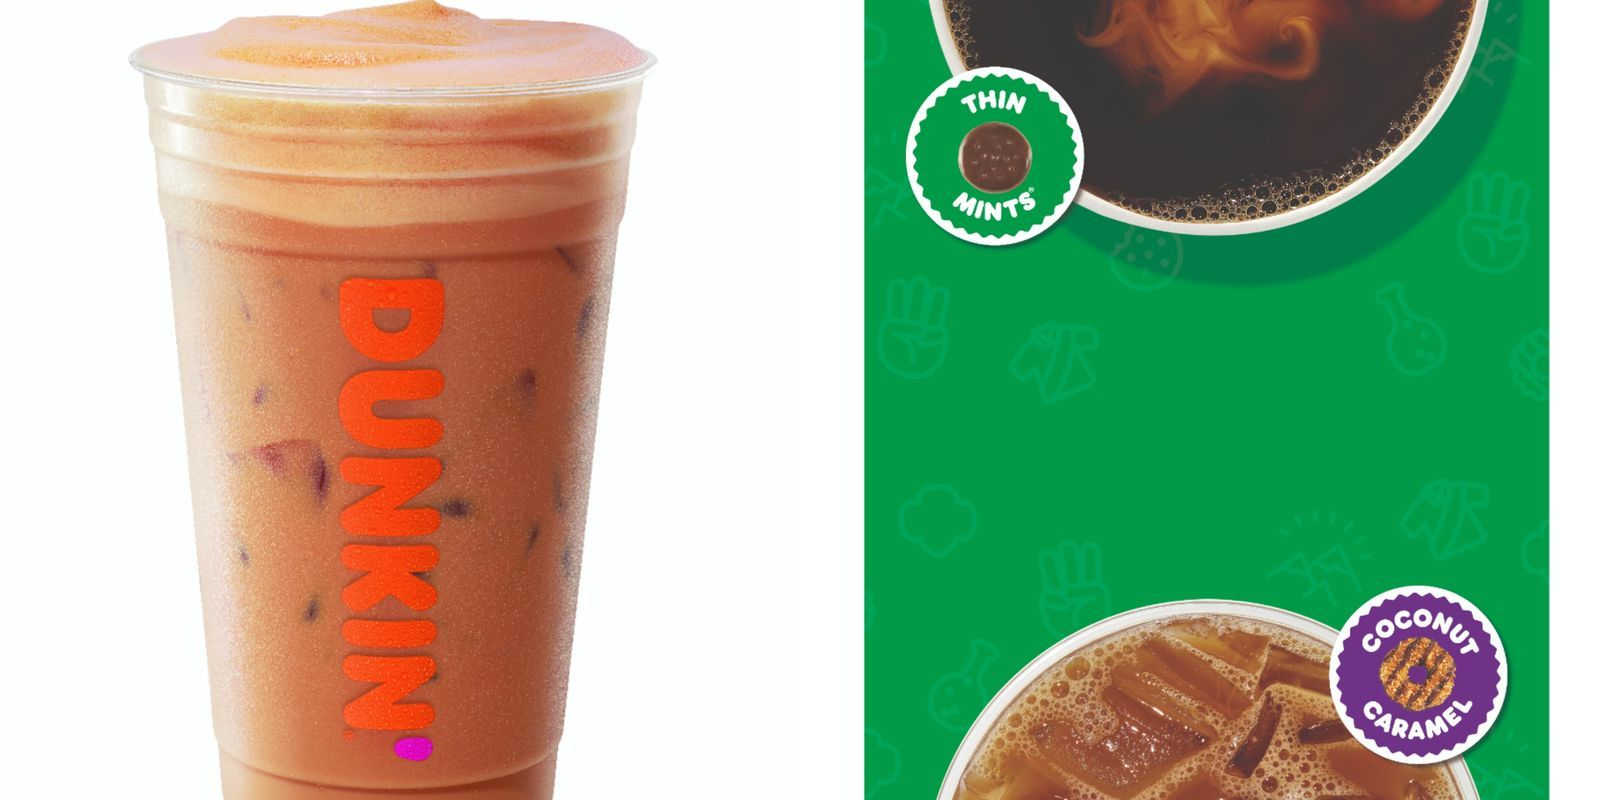 Dunkin' Is Bringing Back Its Thin Mint And Coconut Caramel